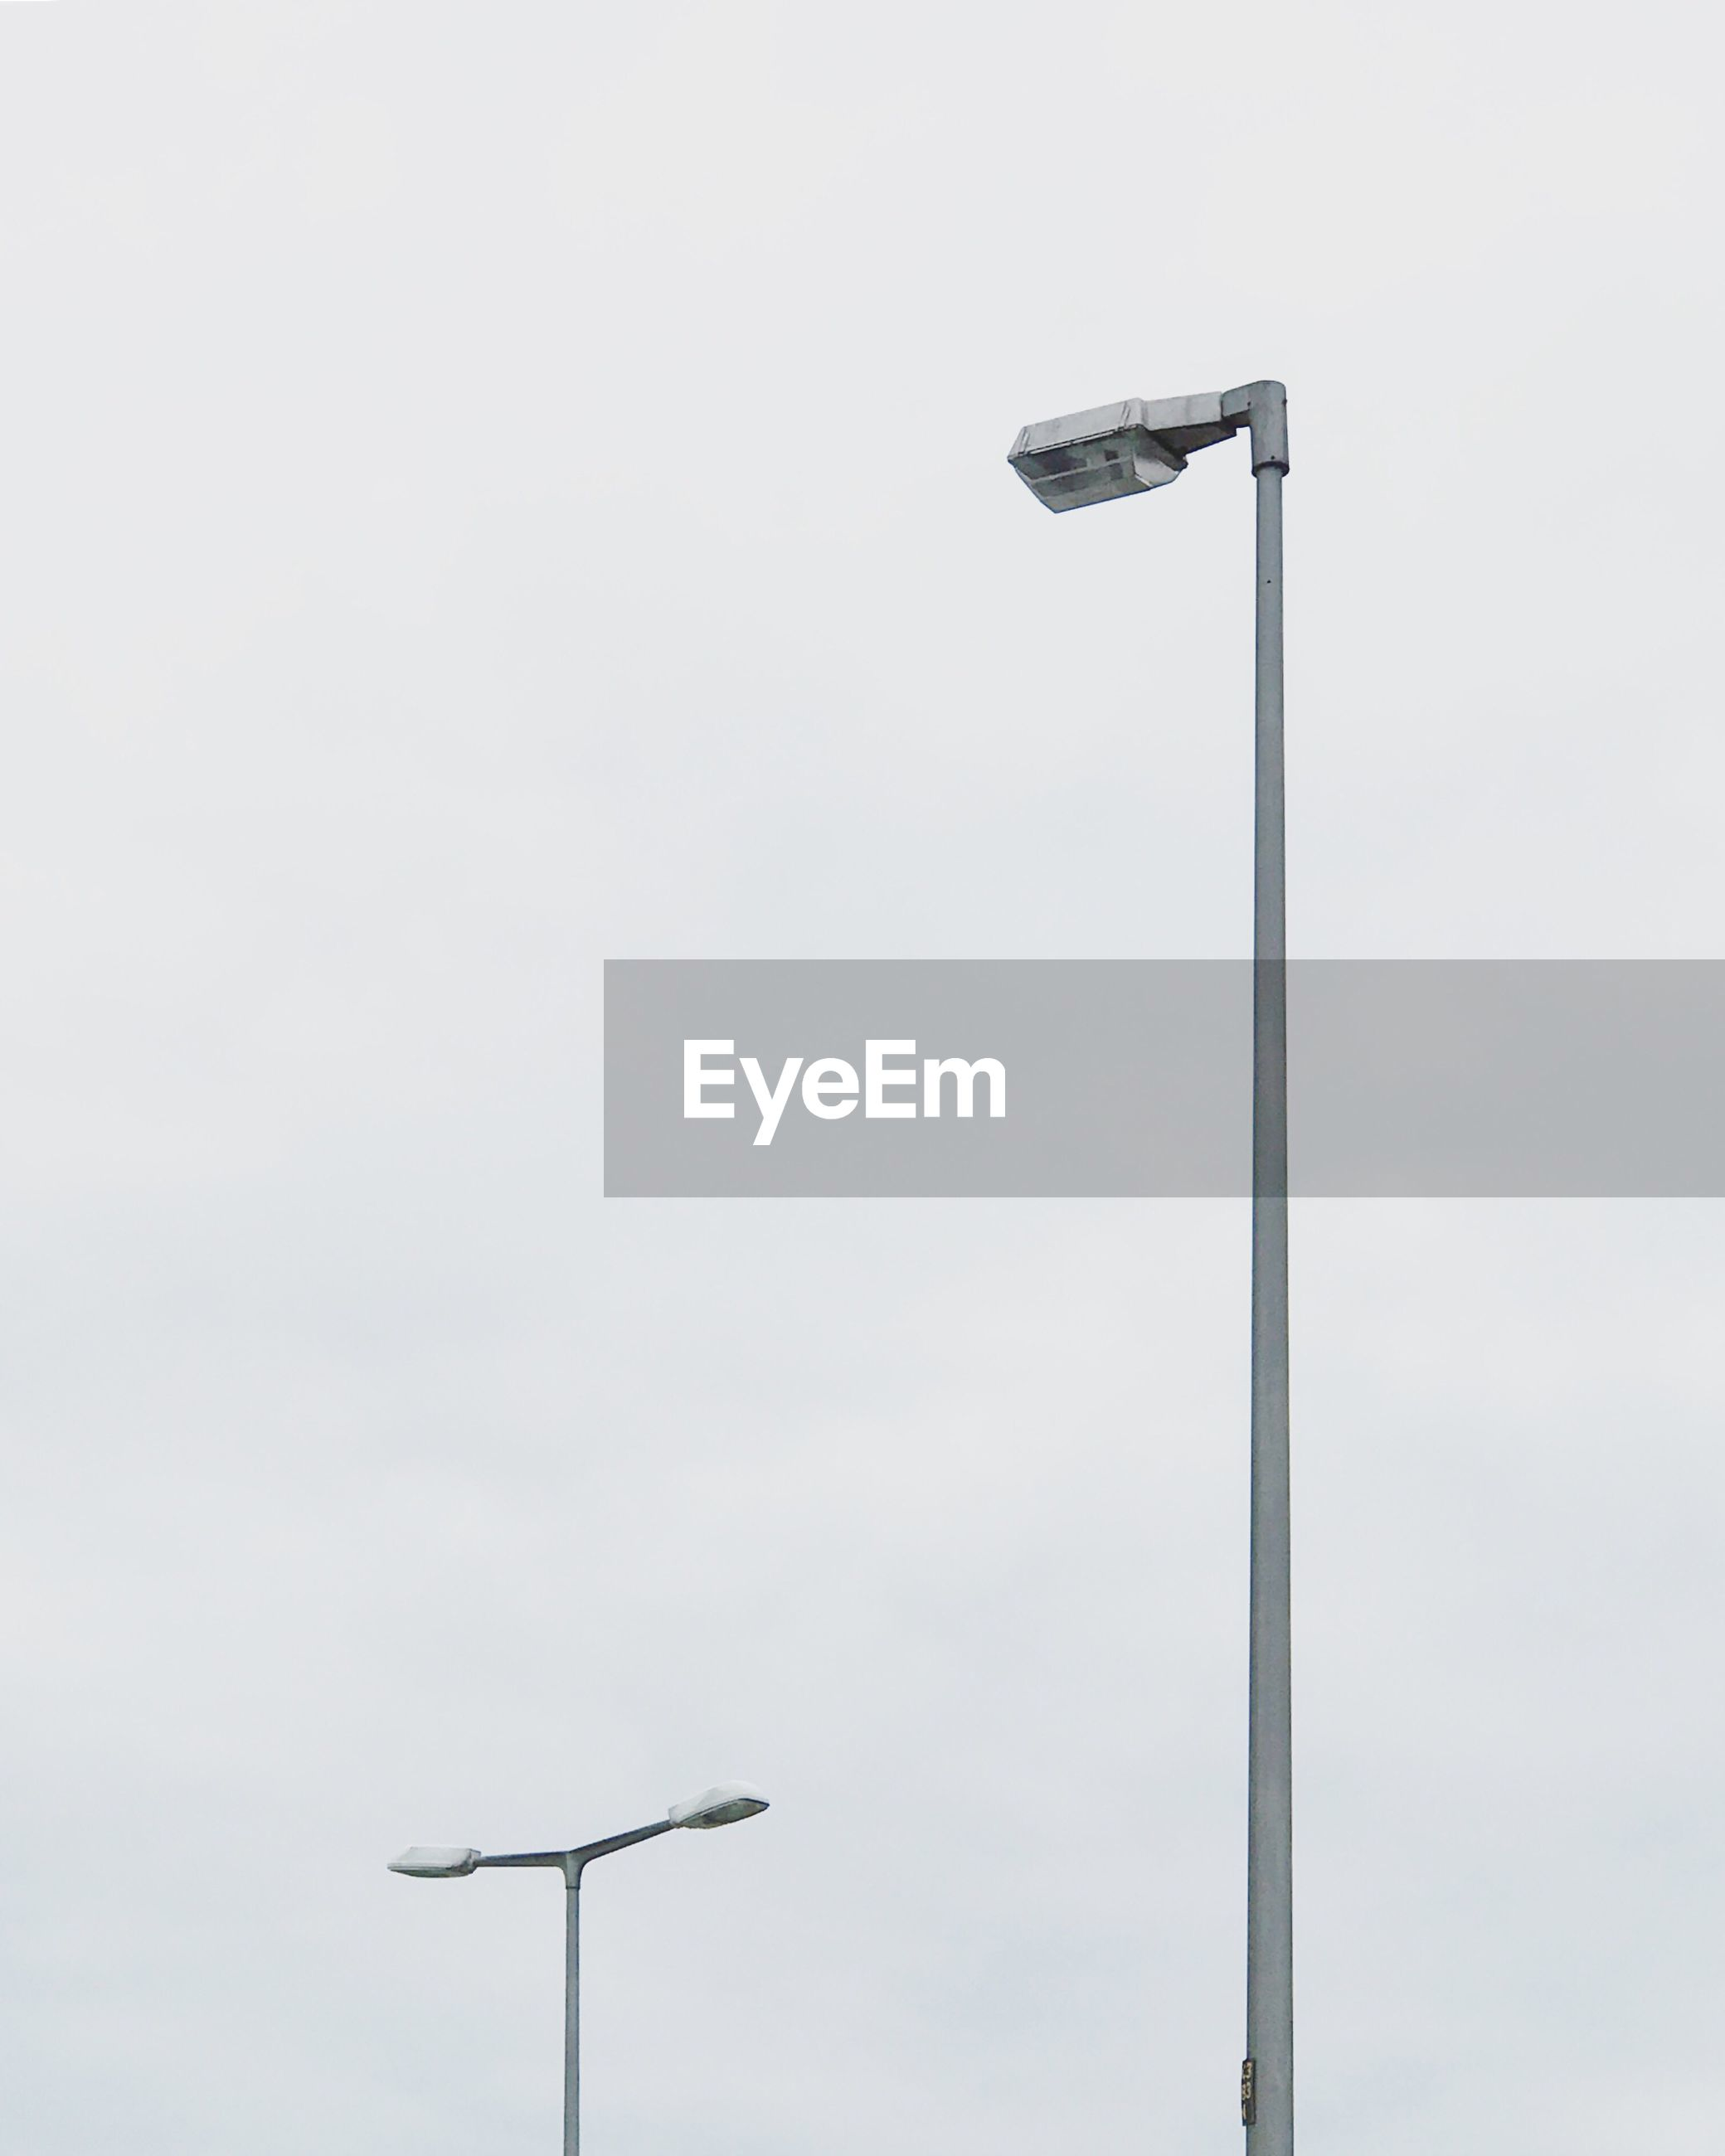 LOW ANGLE VIEW OF FLOODLIGHT AGAINST STREET LIGHT